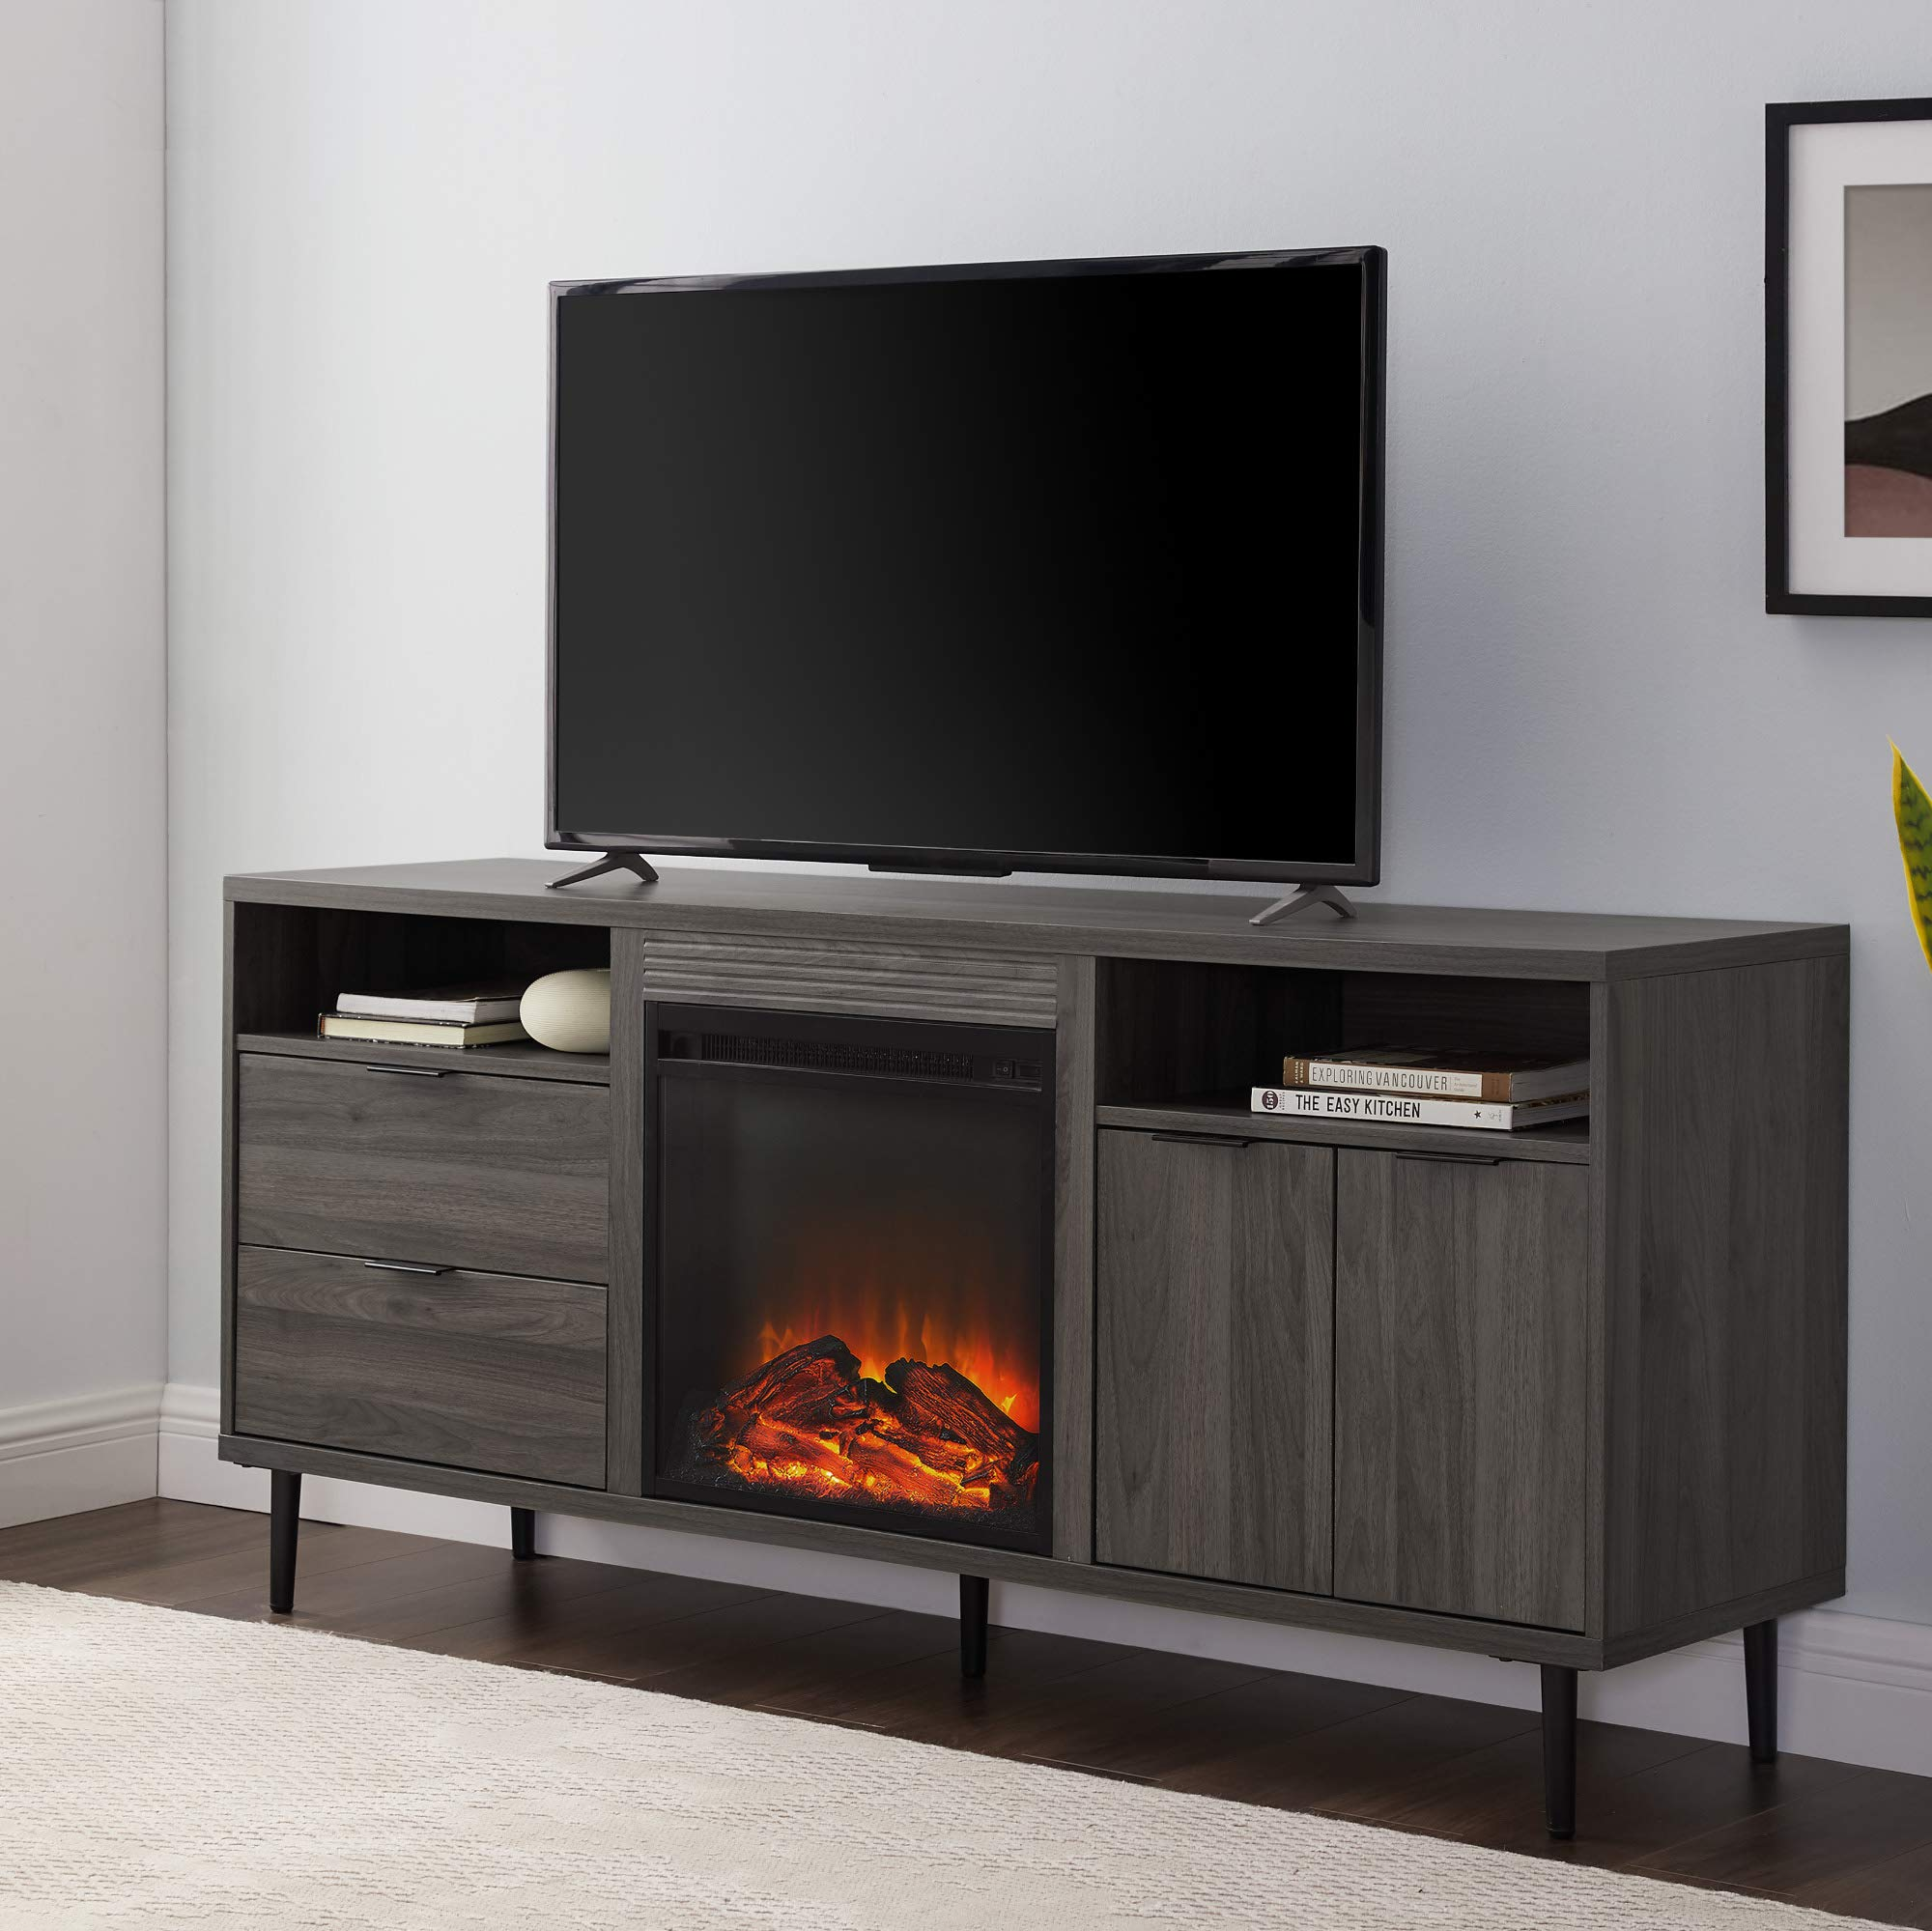 WE Furniture Modern 2-Drawer Fireplace TV stand with Cabinet Storage, 60'', Slate Grey by WE Furniture